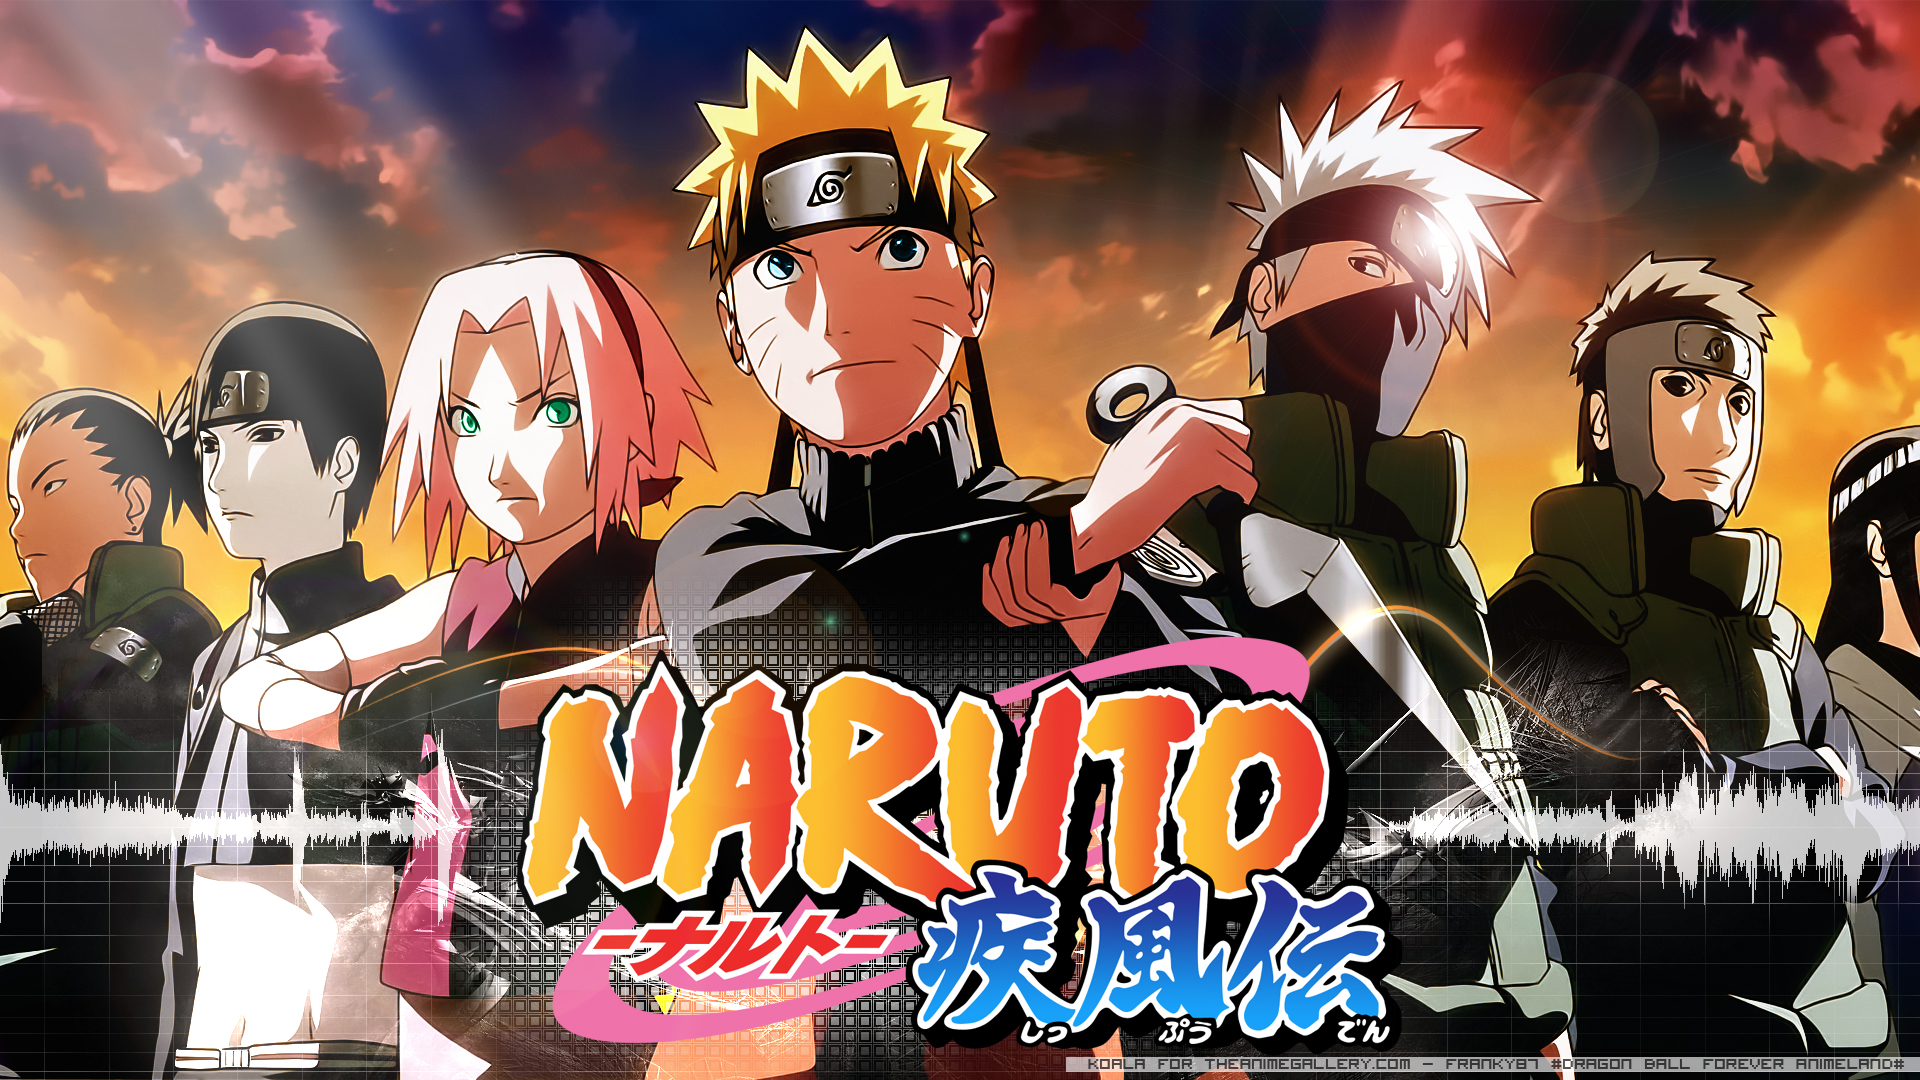 Naruto Anime Wallpaper For Free